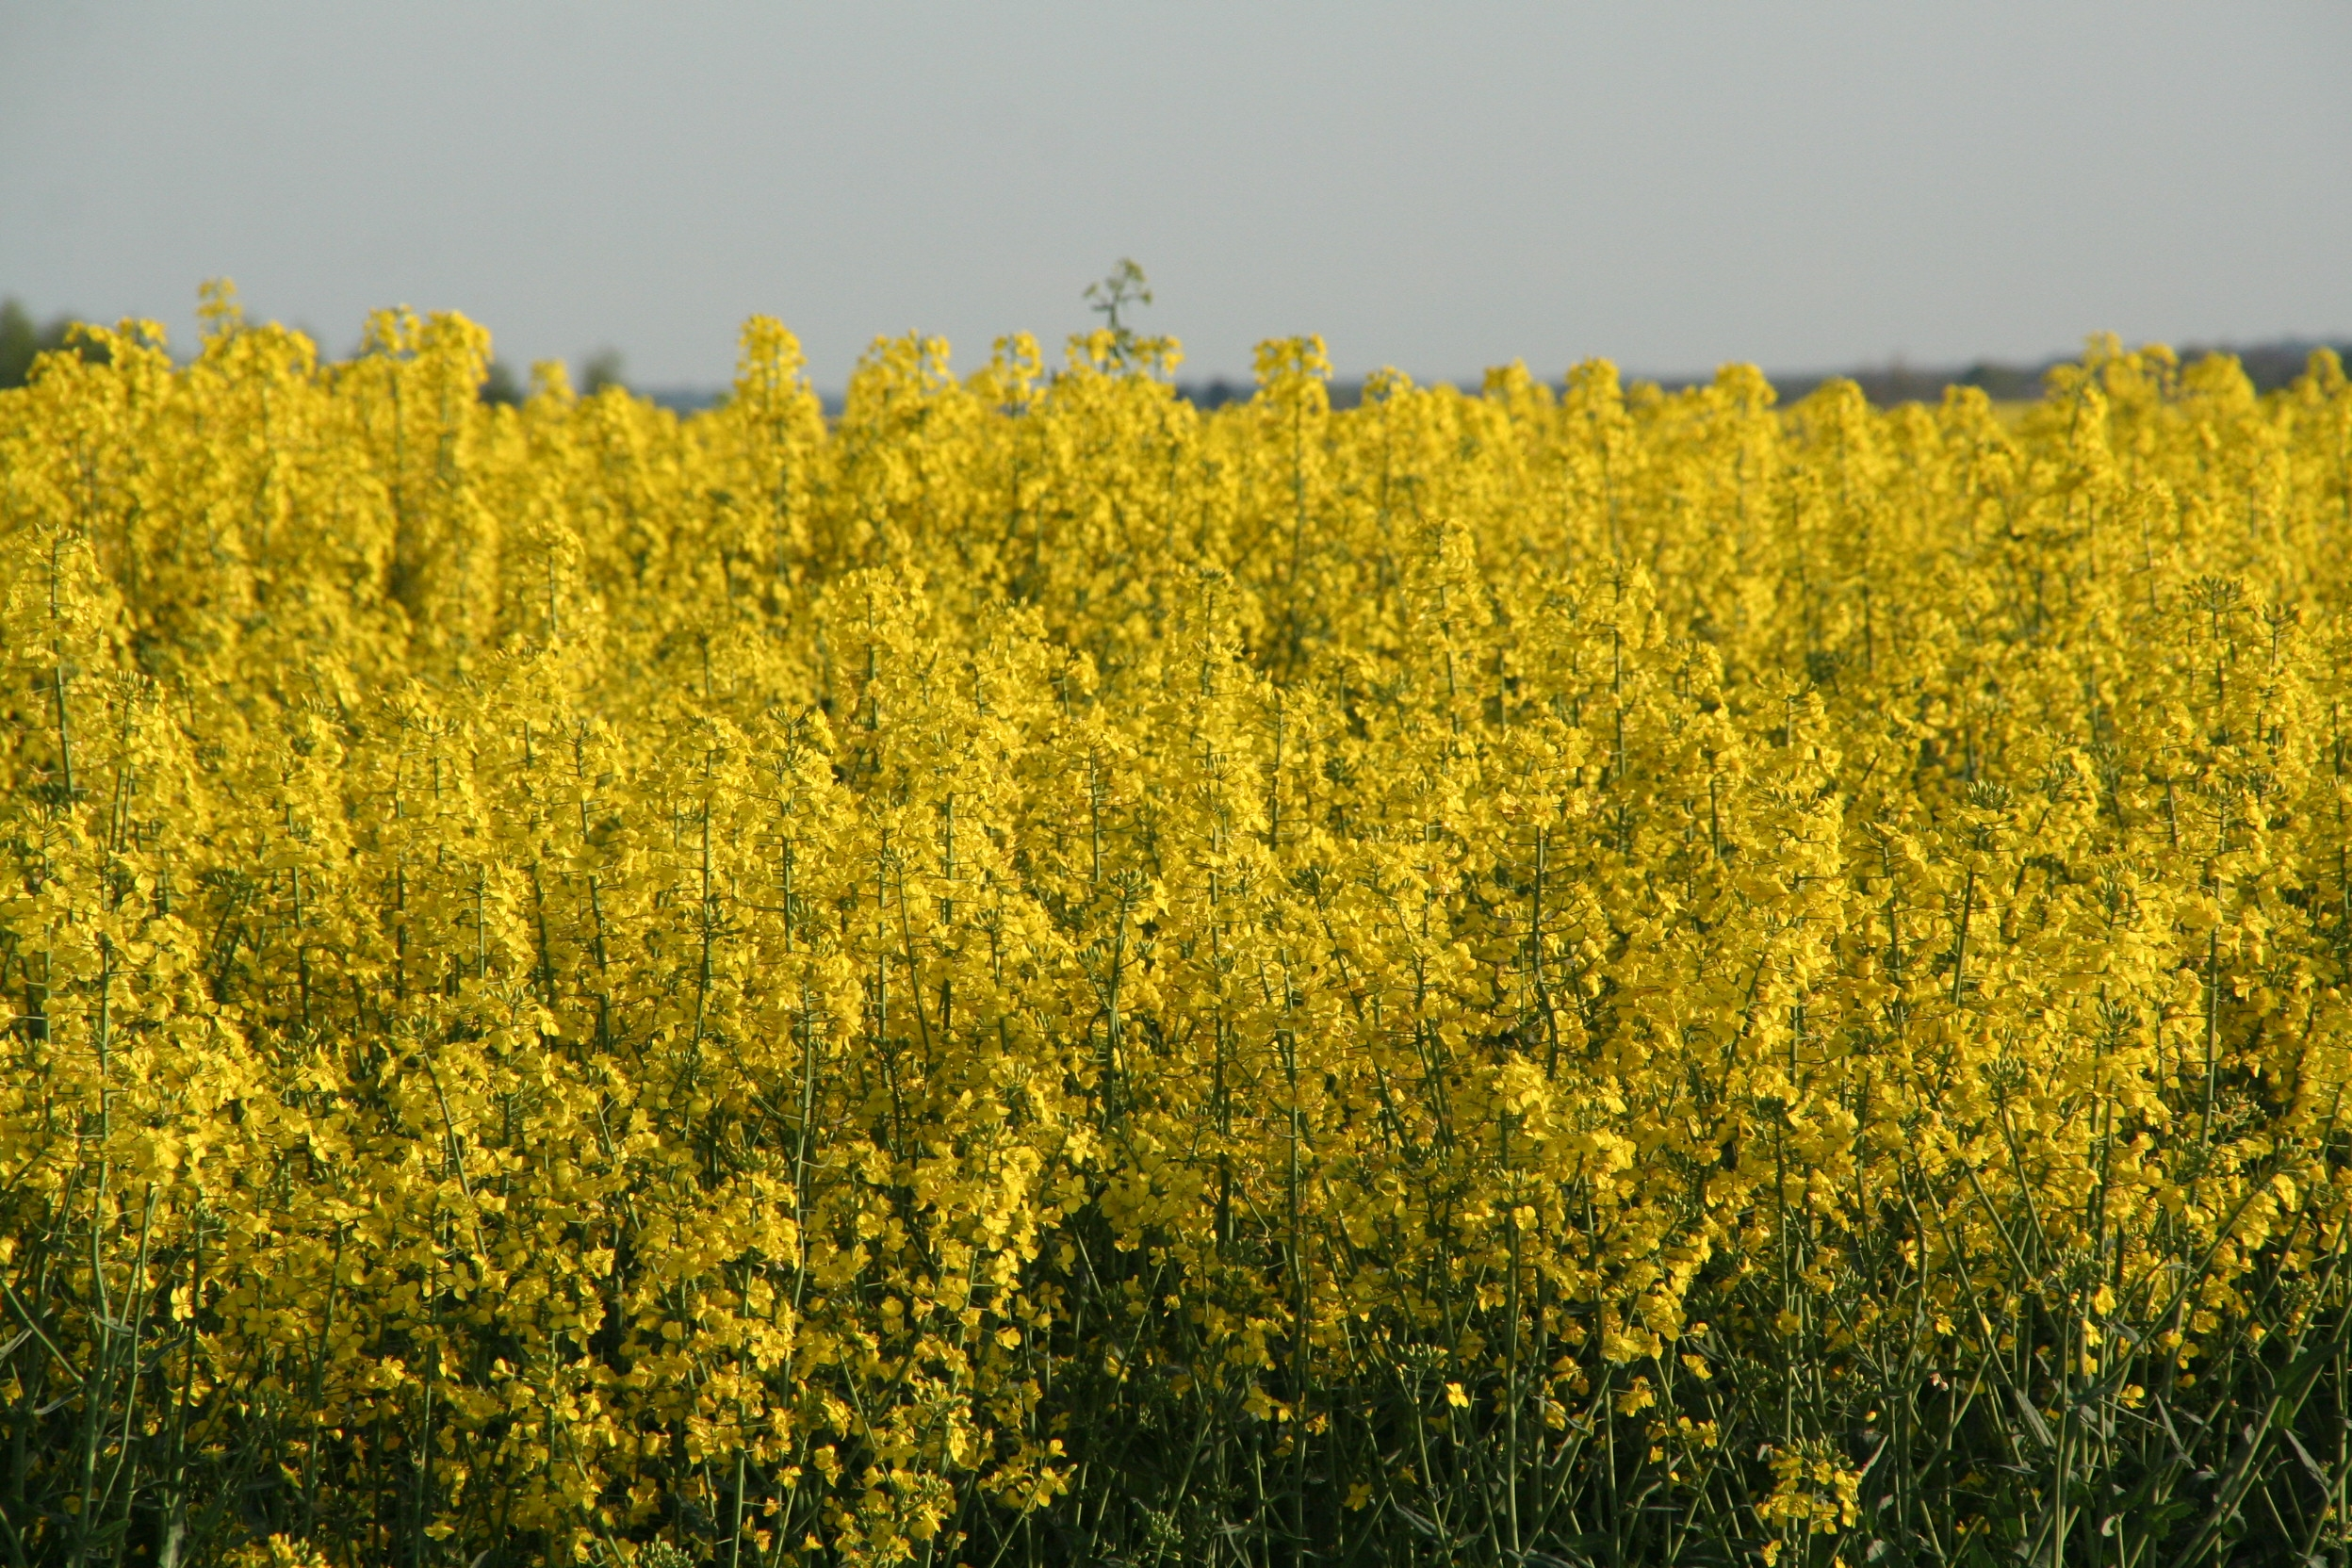 OSR growers urged to join Voluntary Initiative